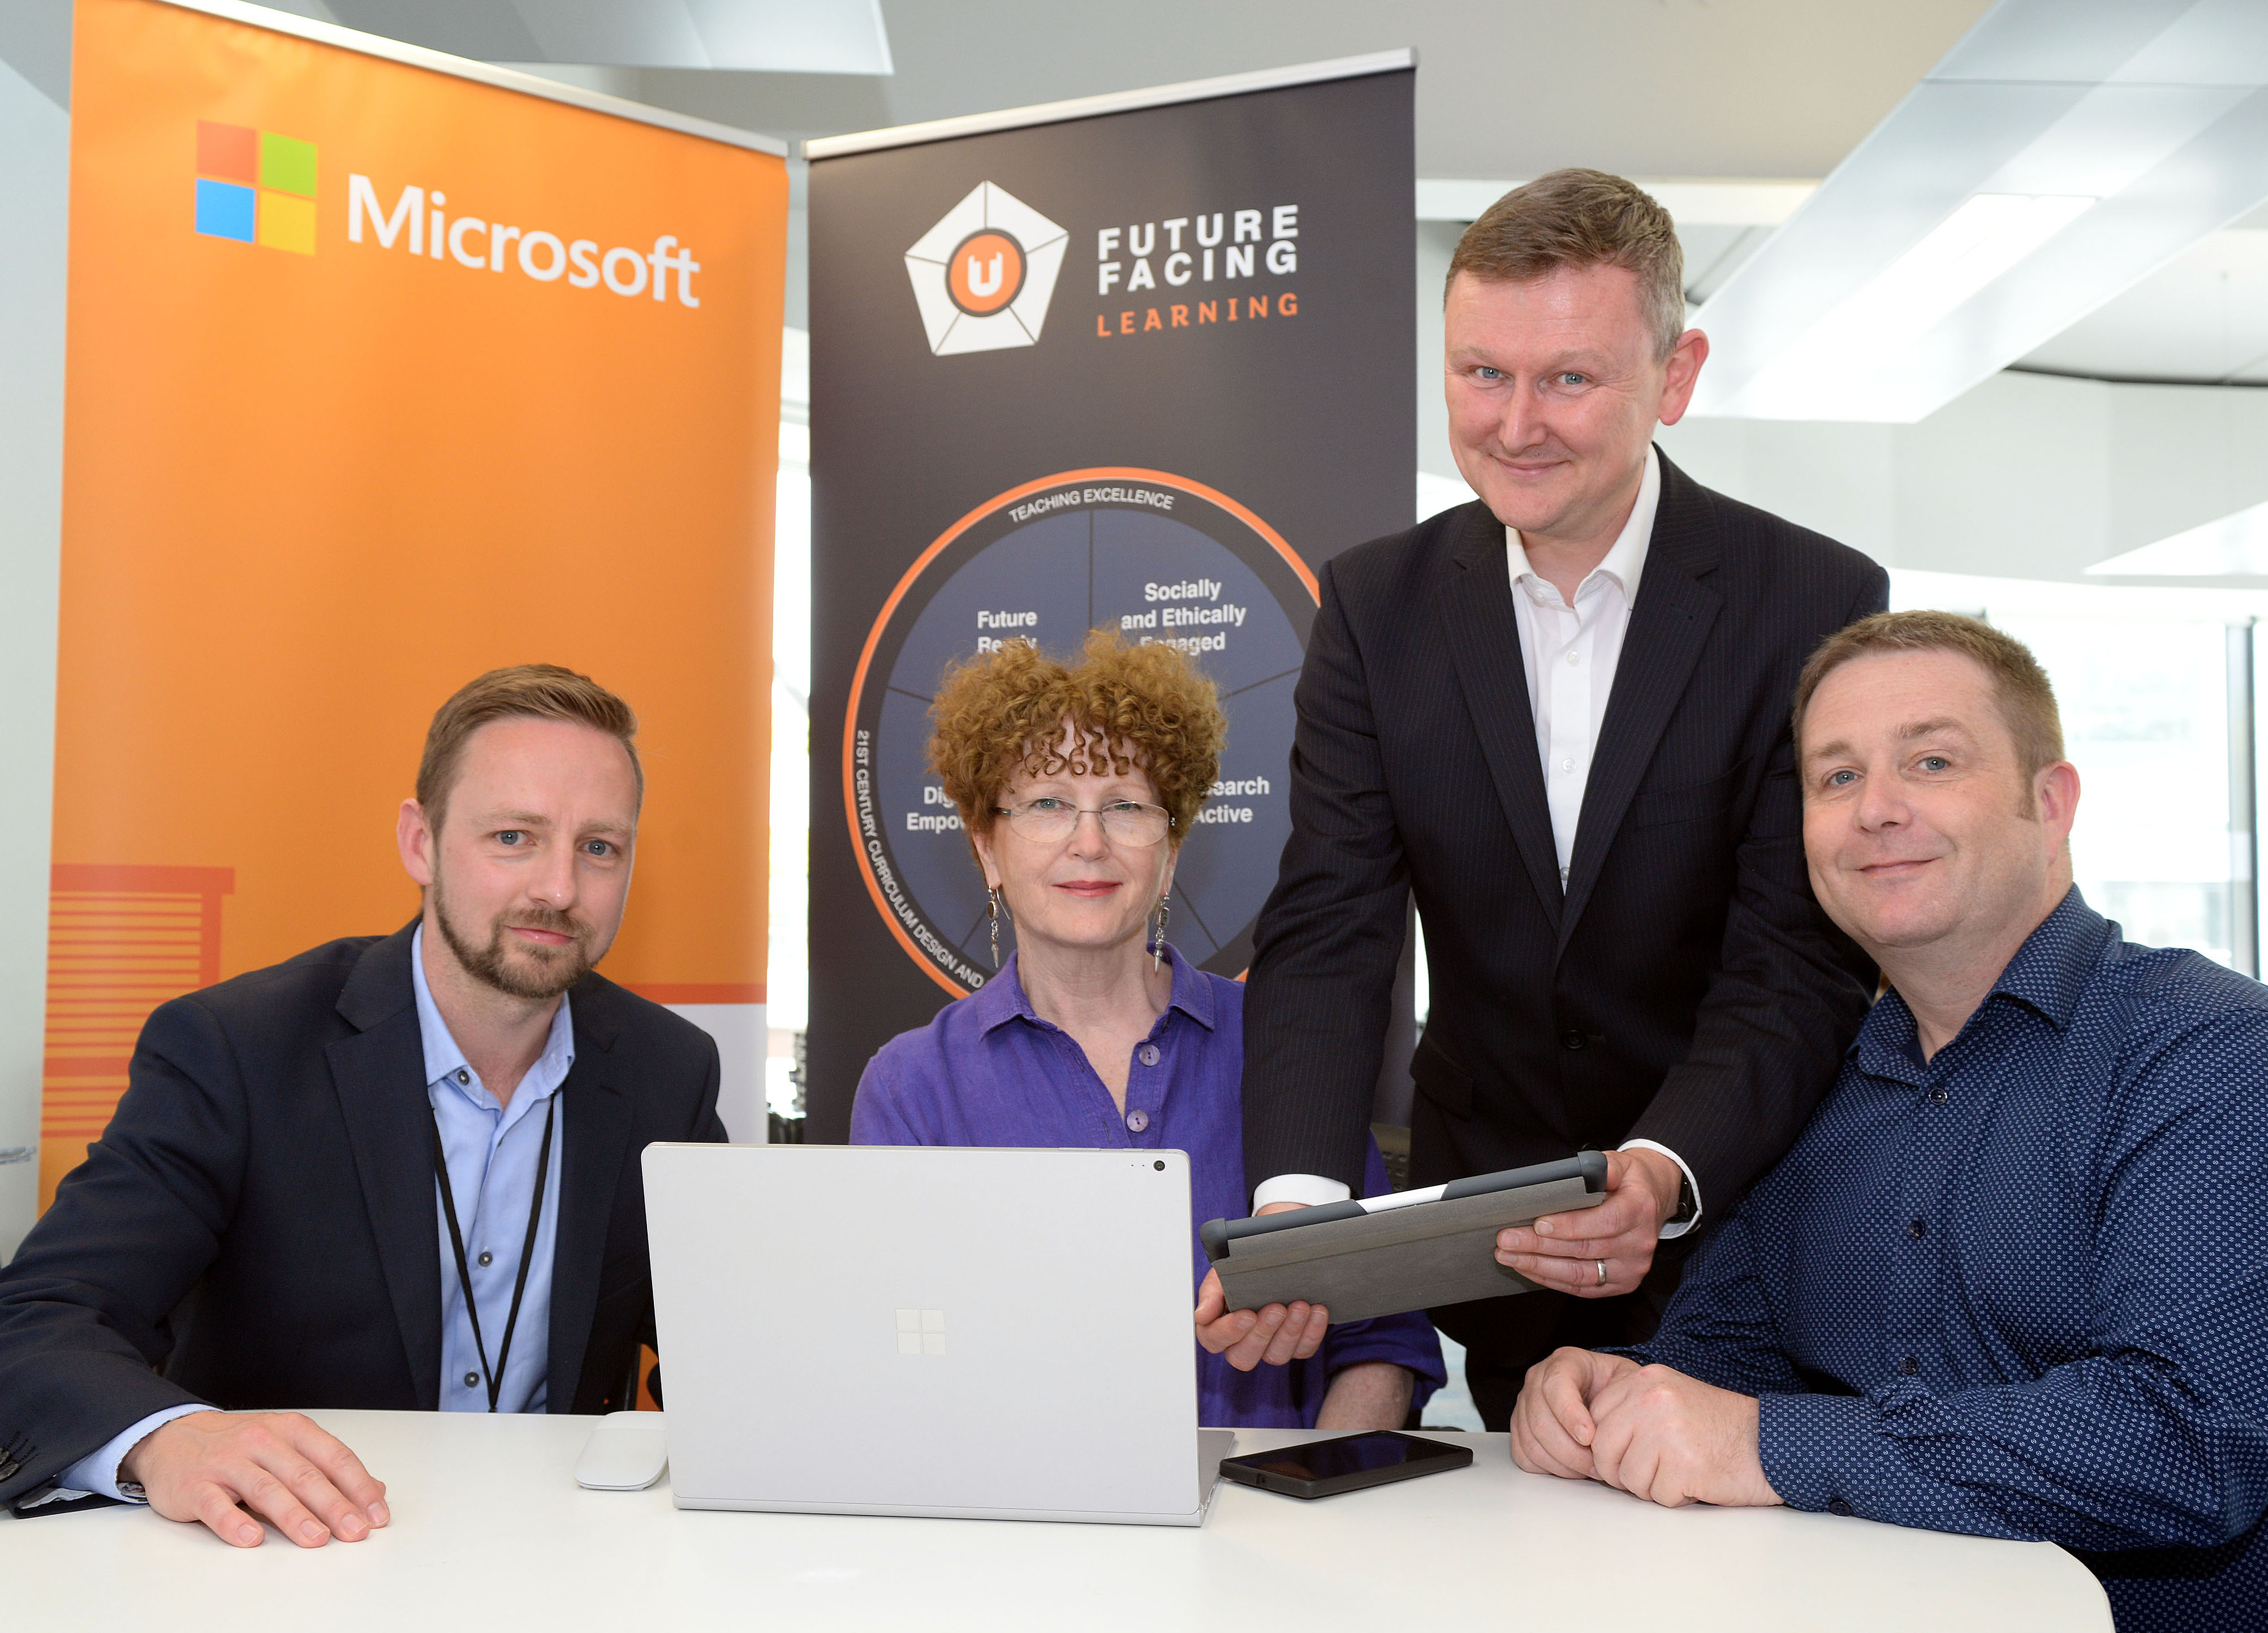 Paul Durston, Digital Learning Manager at Teesside University, Claire Riley, FE and HE Engagement Manager for Microsoft in the UK, Dr Steve Bunce, Professional Learning Specialist at XMA and David Wright, Microsoft Specialist at XMA.